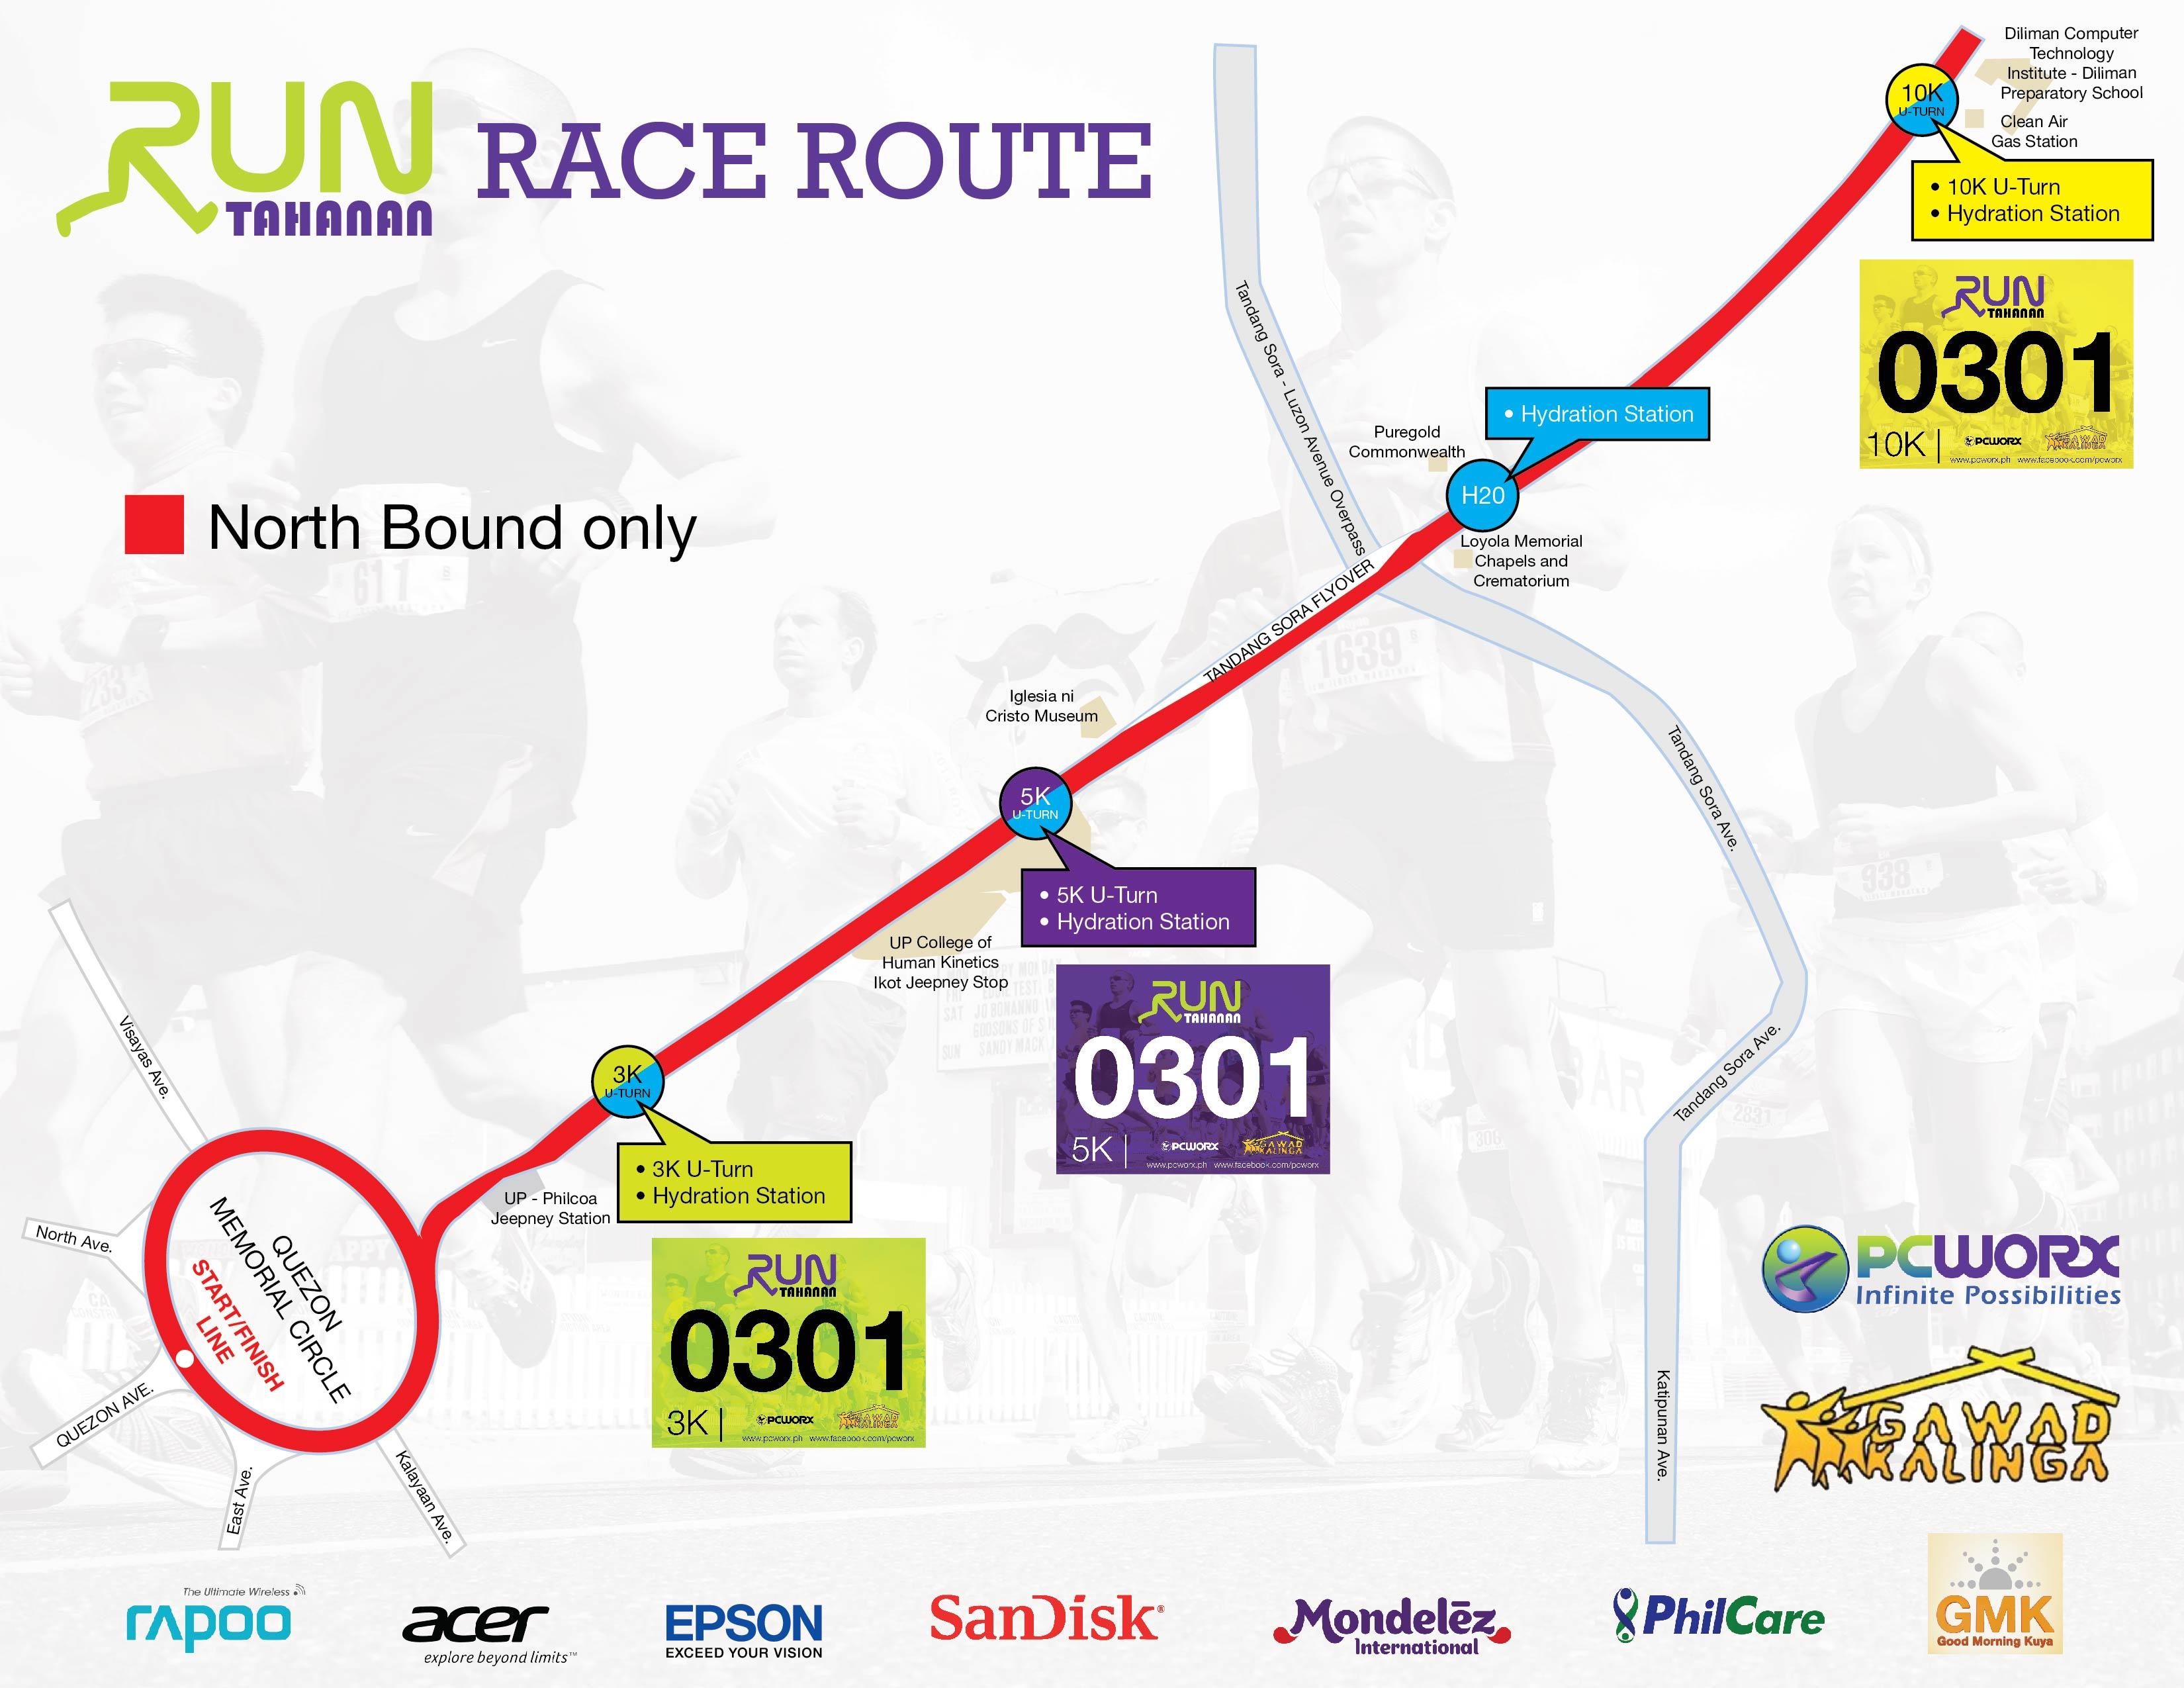 run-tahanan-2014-route-map